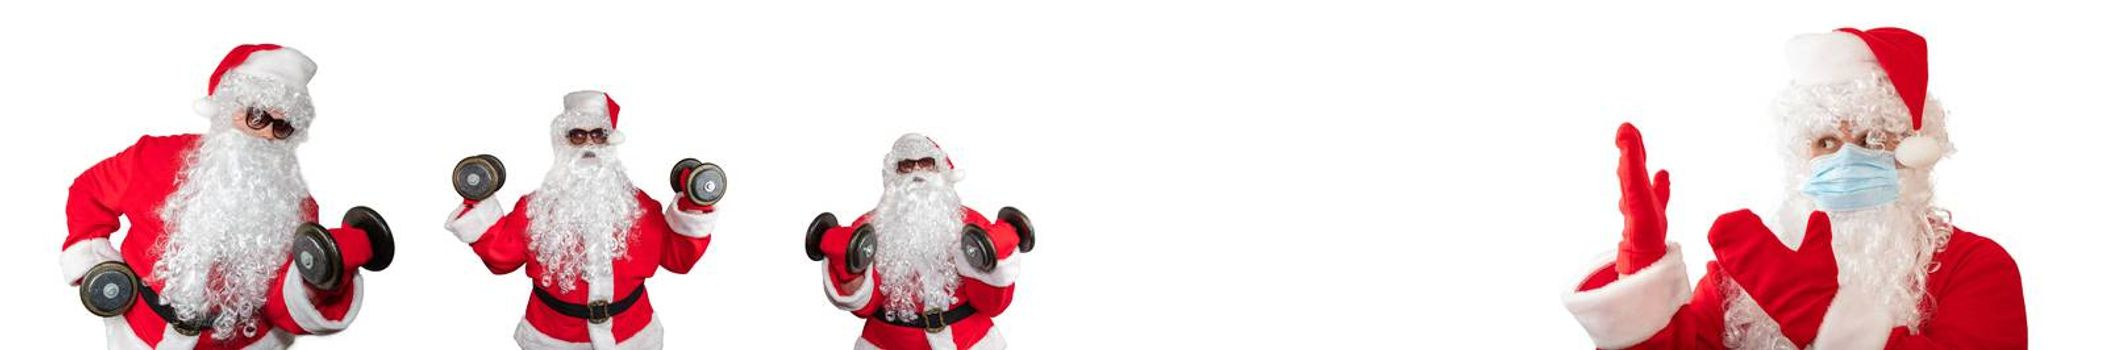 Santa Claus wearing a medical mask pointing at other Santa Clauses working out and doing bicep curls. Isolated on white background. Sport, fitness, medical conept. Banner size, copy space.